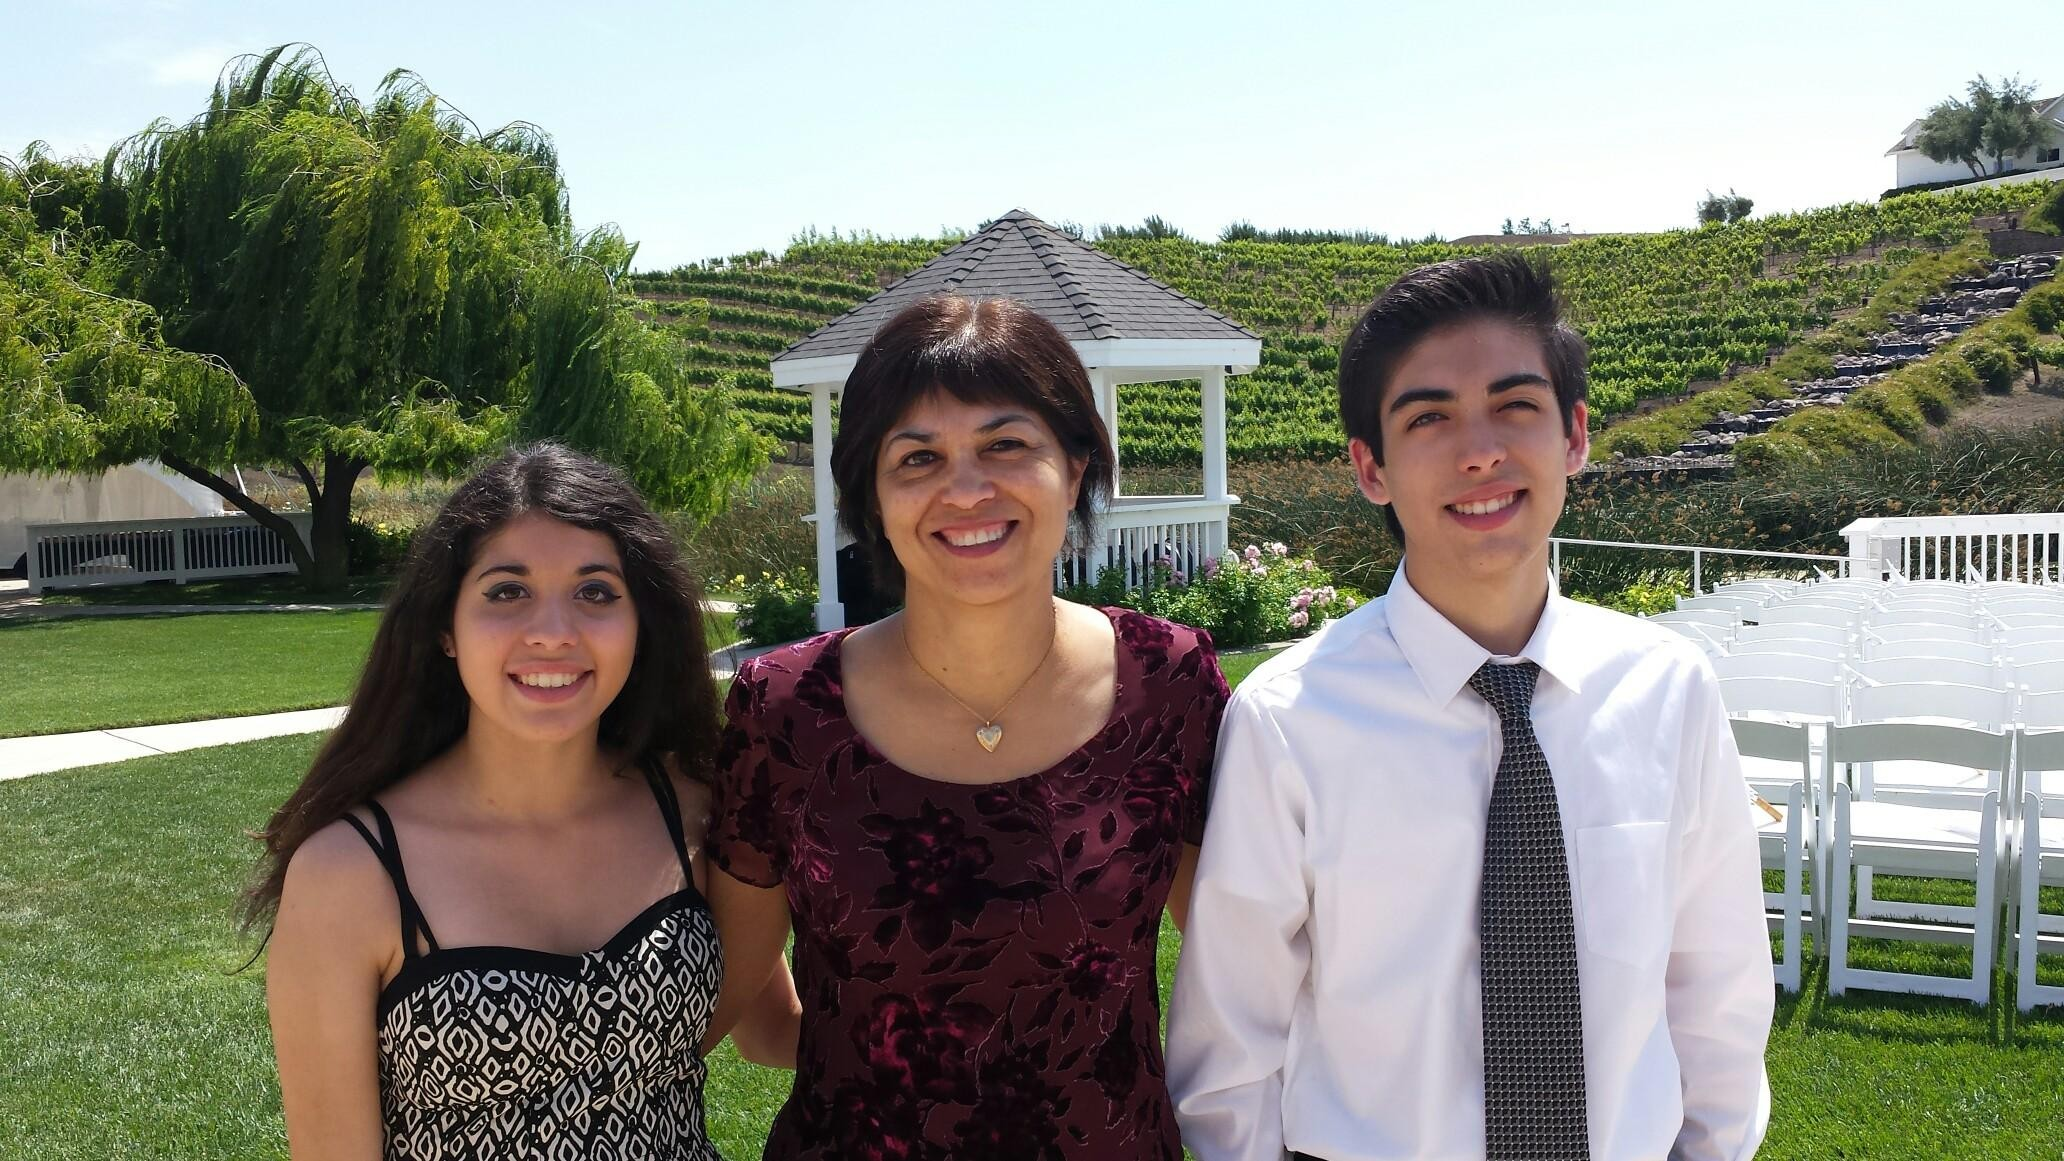 Kristina, middle aged woman in center with two young adult children beside her. They are each smiling at camera with scenic view behind them. They each have brown hair, and dressed formal attire.